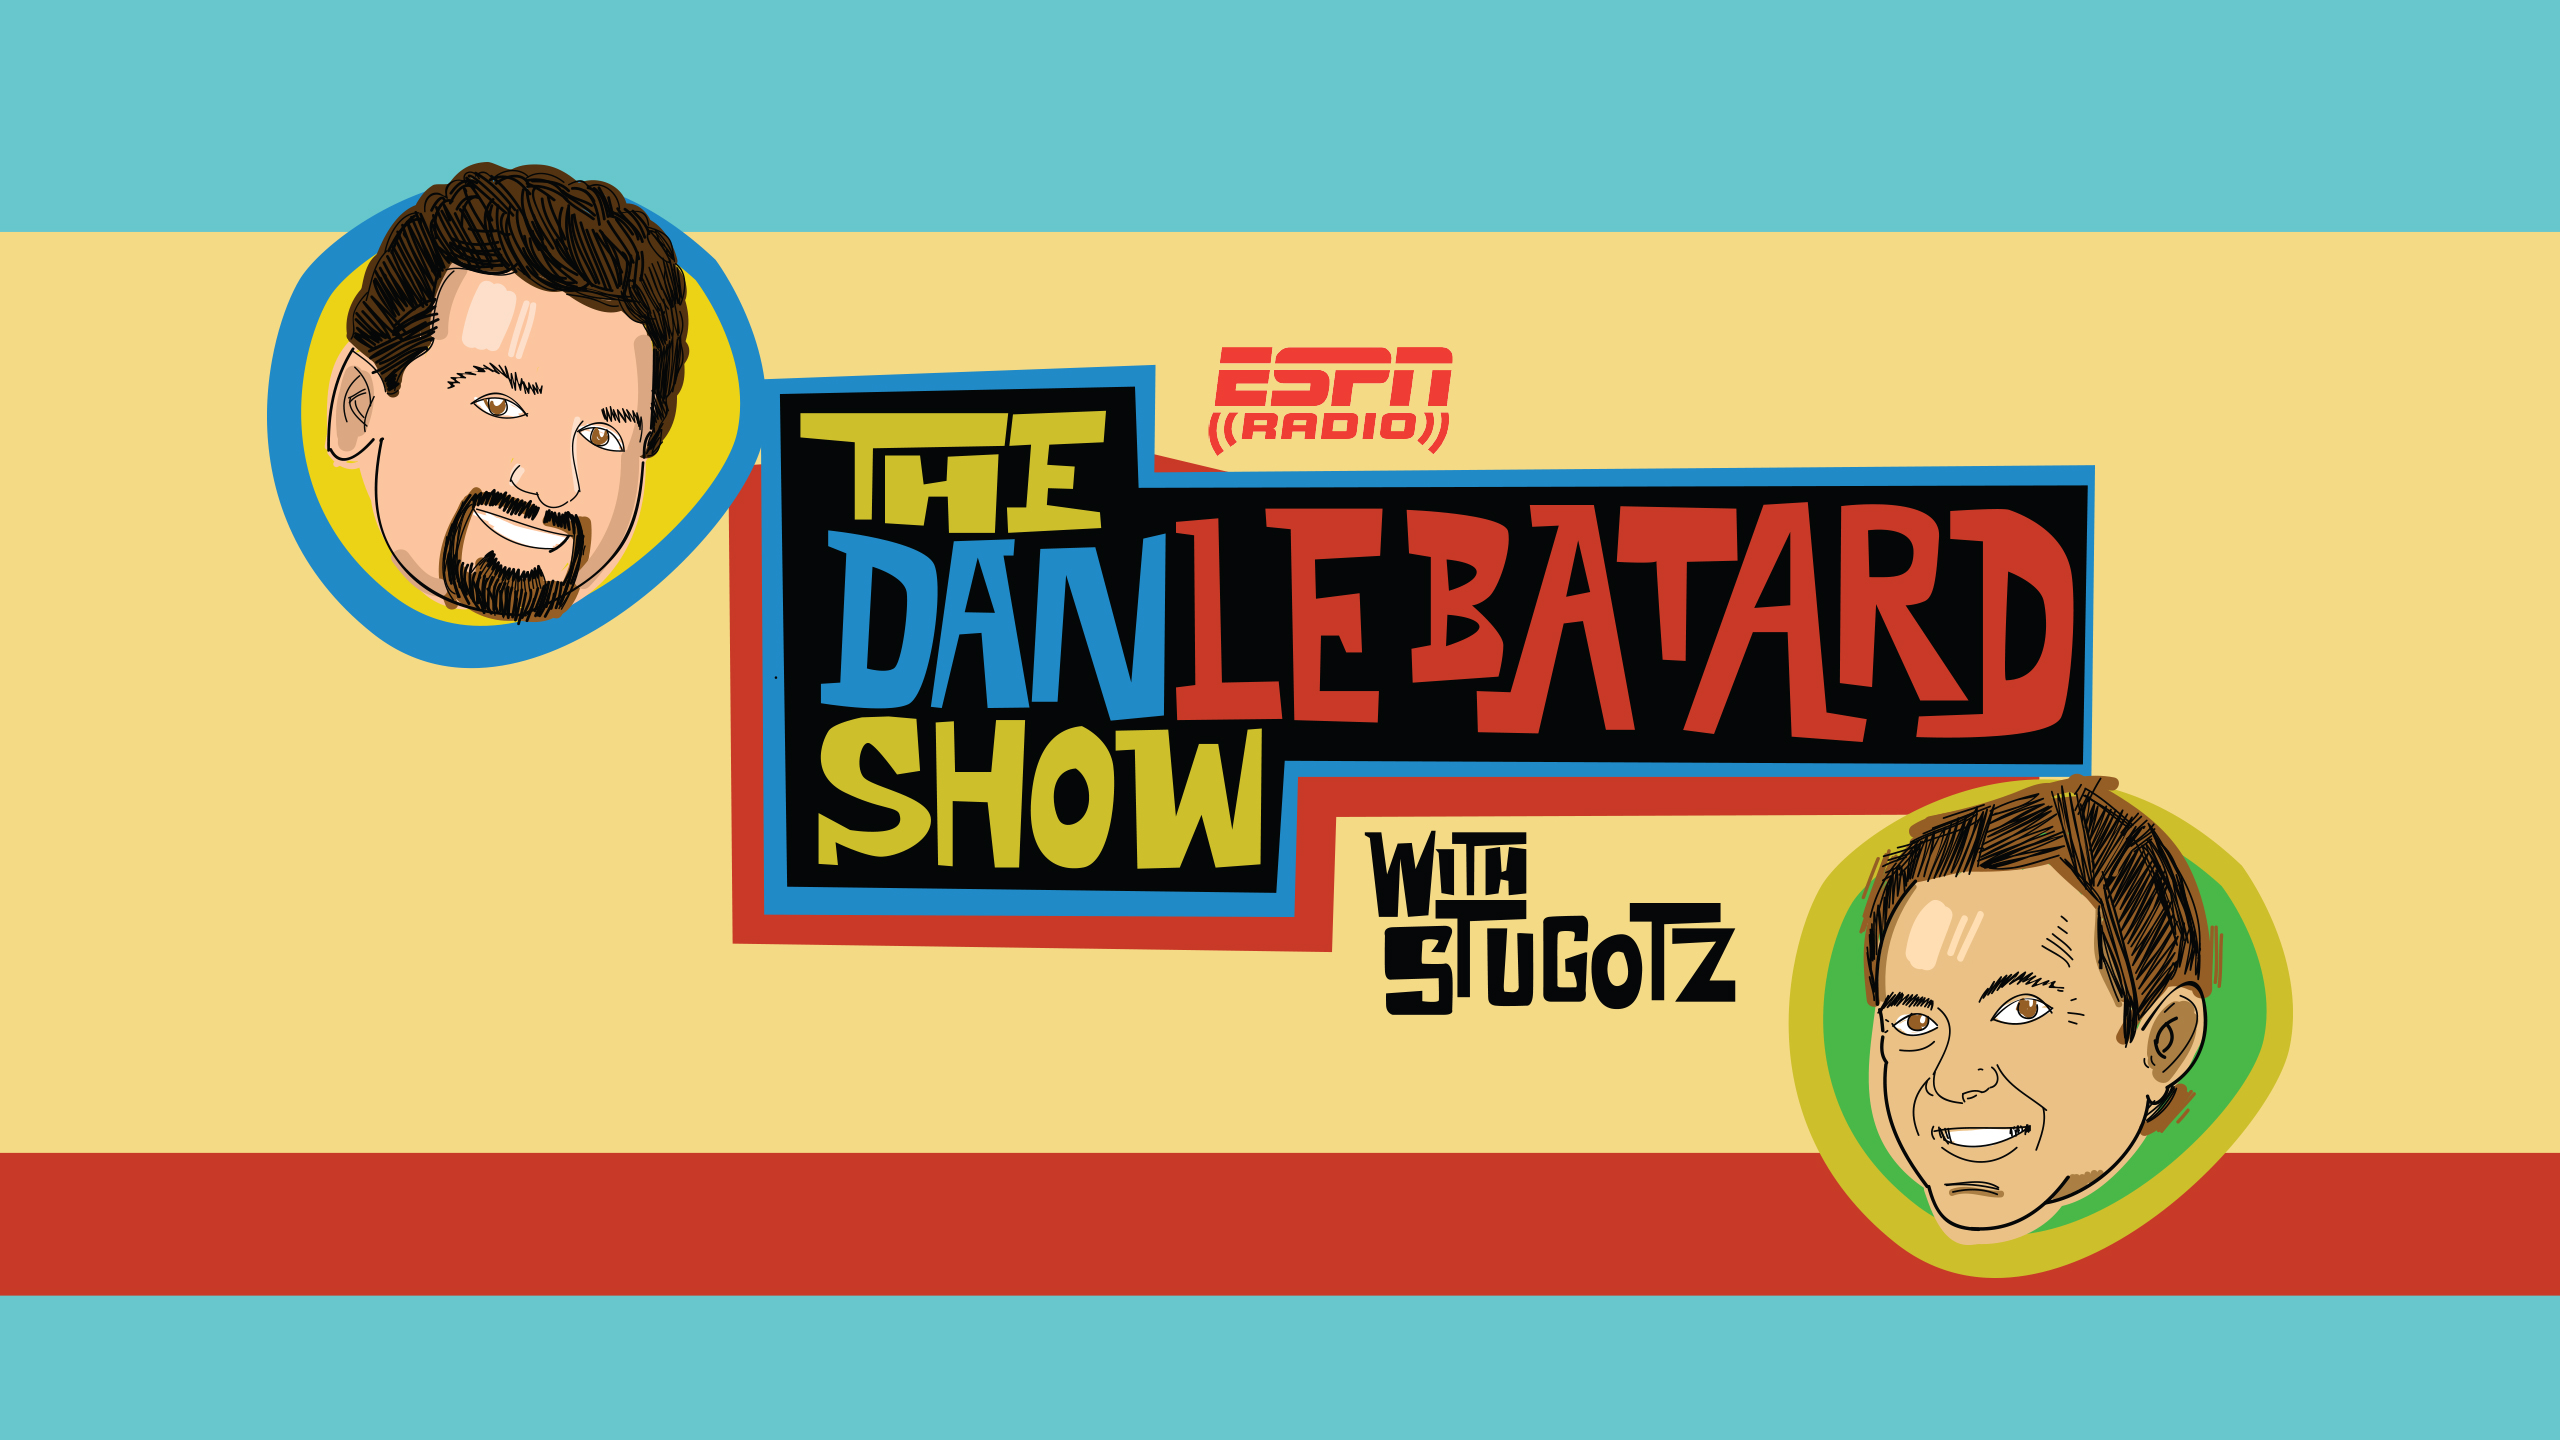 Fri, 1/18 - The Dan Le Batard Show with Stugotz Presented by Progressive